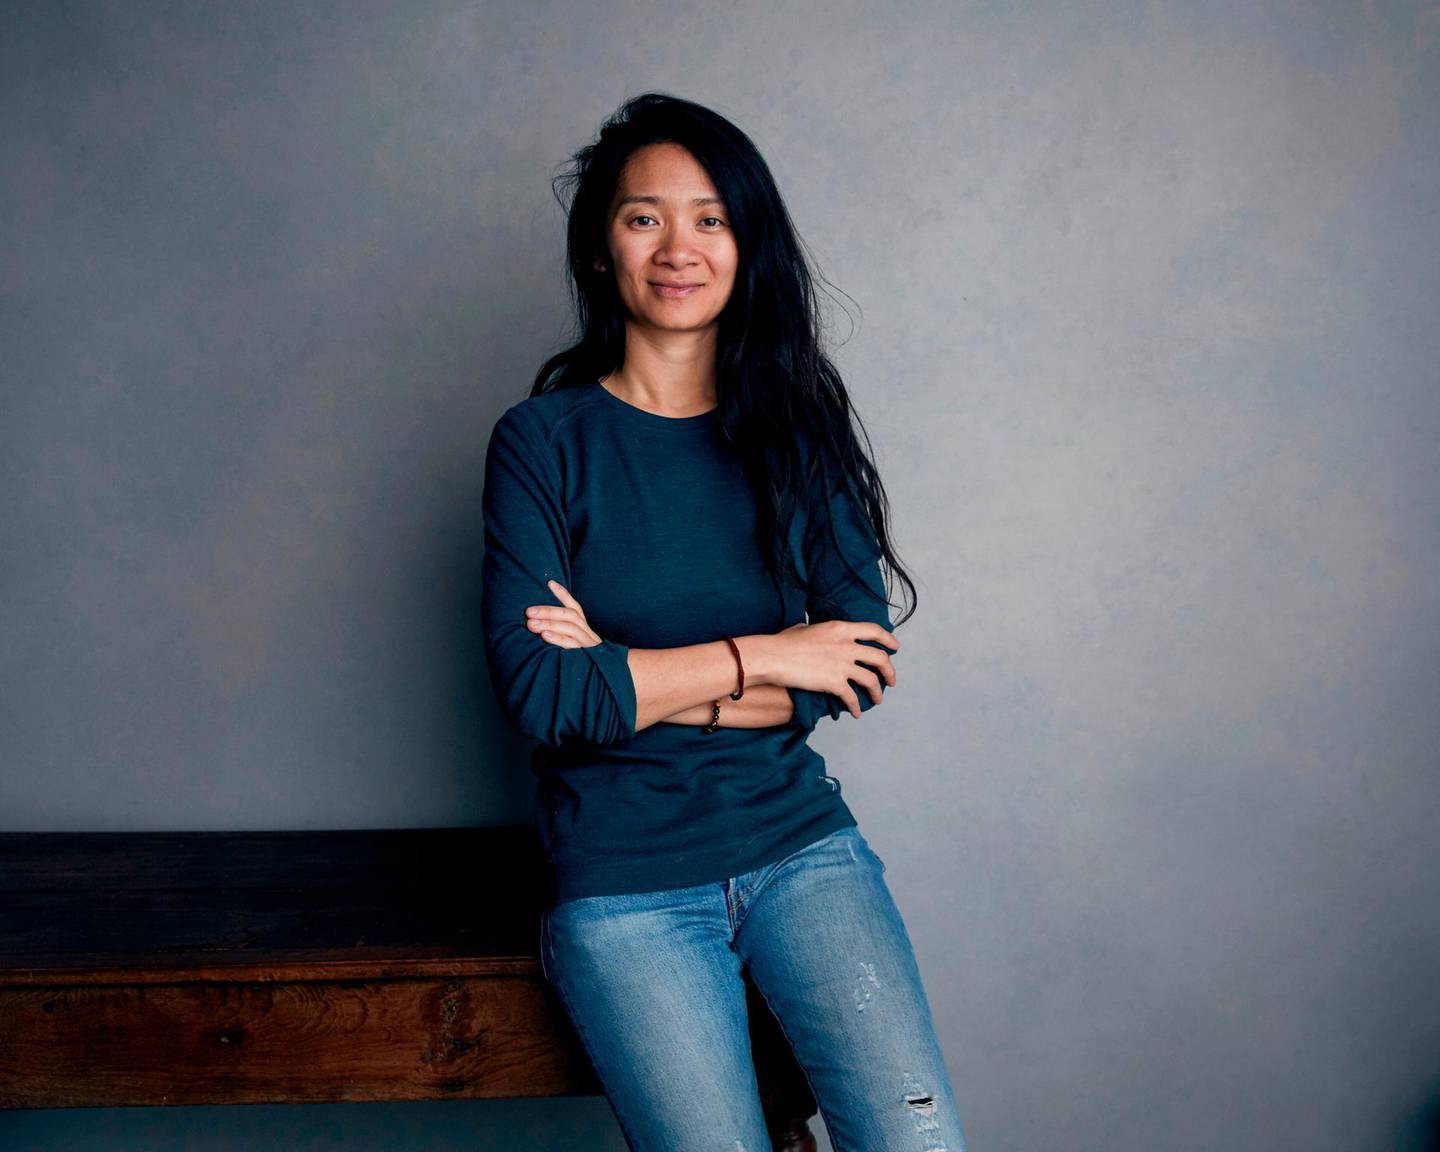 """FILE - This Jan. 22, 2018 file photo shows writer/director Chloe Zhao posing for a portrait to promote her film """"The Rider"""" during the Sundance Film Festival in Park City, Utah. The National Society of Film Critics on Saturday, Jan. 5, 2019, has chosen Zhao's low-budget debut feature """"The Rider"""" as best picture of 2018. (Photo by Taylor Jewell/Invision/AP, File)"""